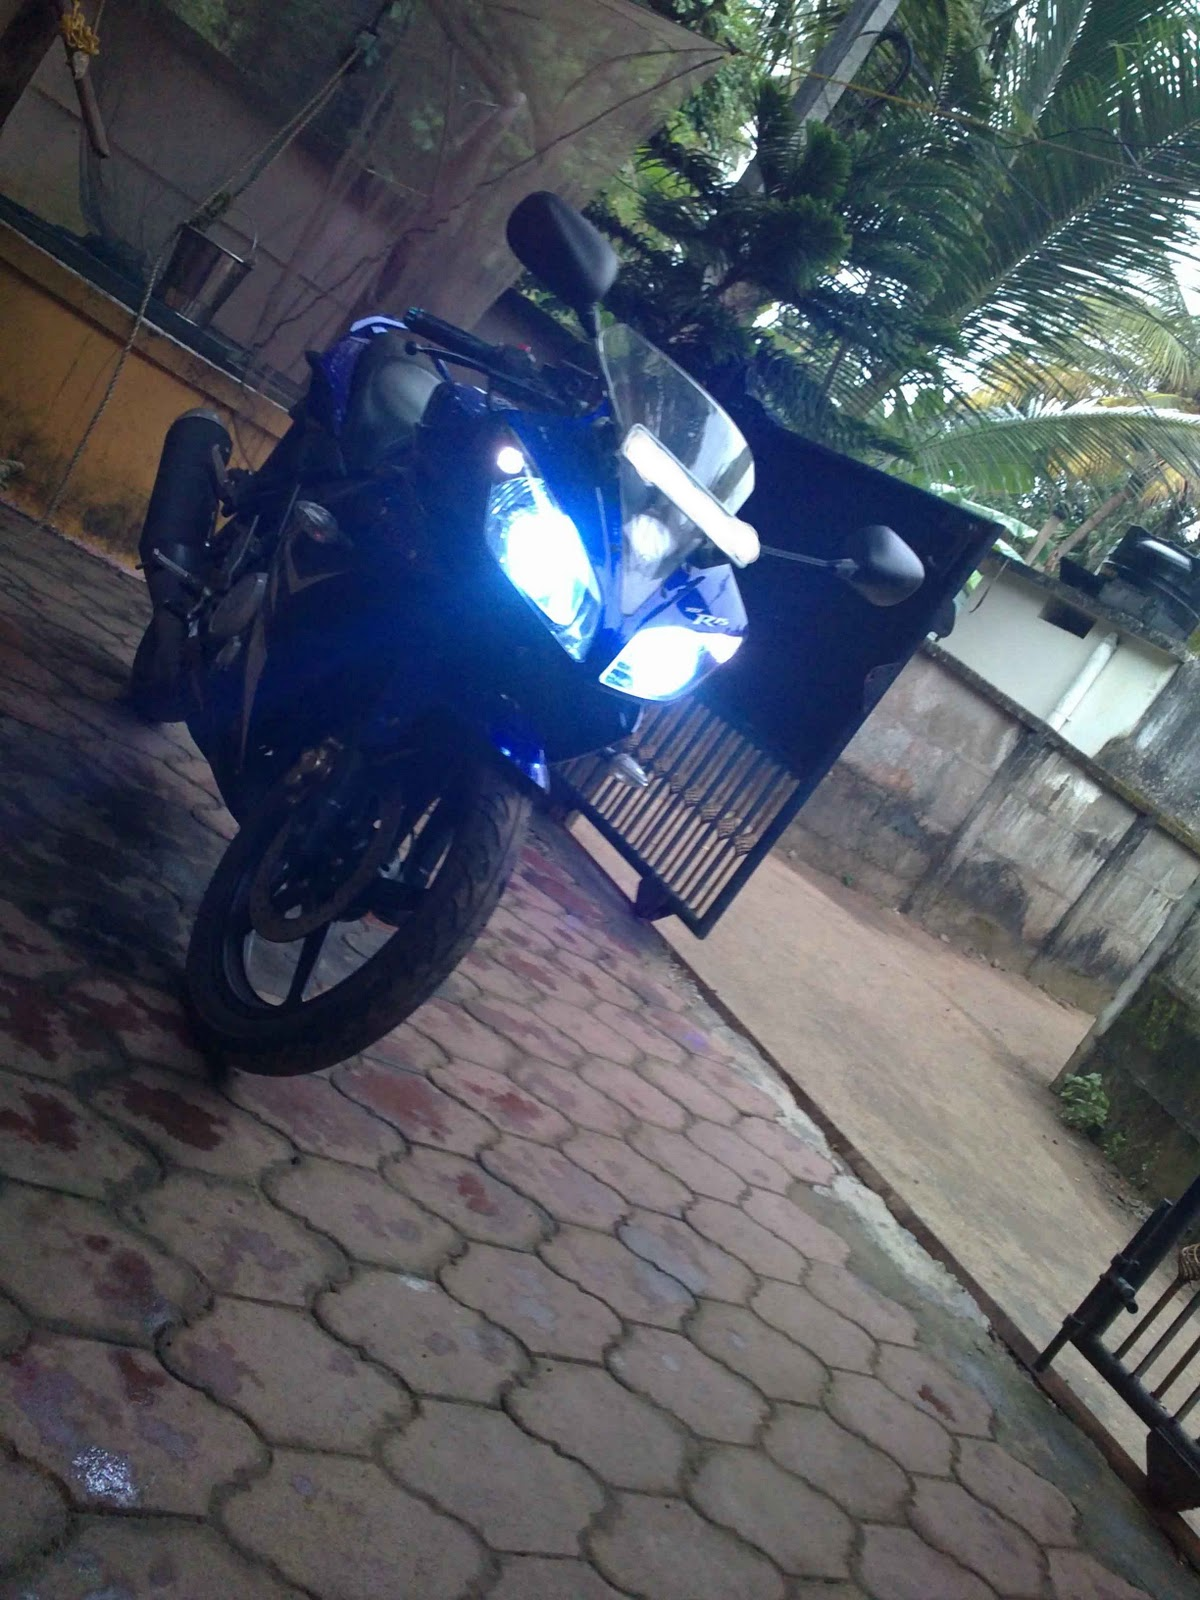 R15 V2 Modified With Projector Lights R15 blue flash light |...